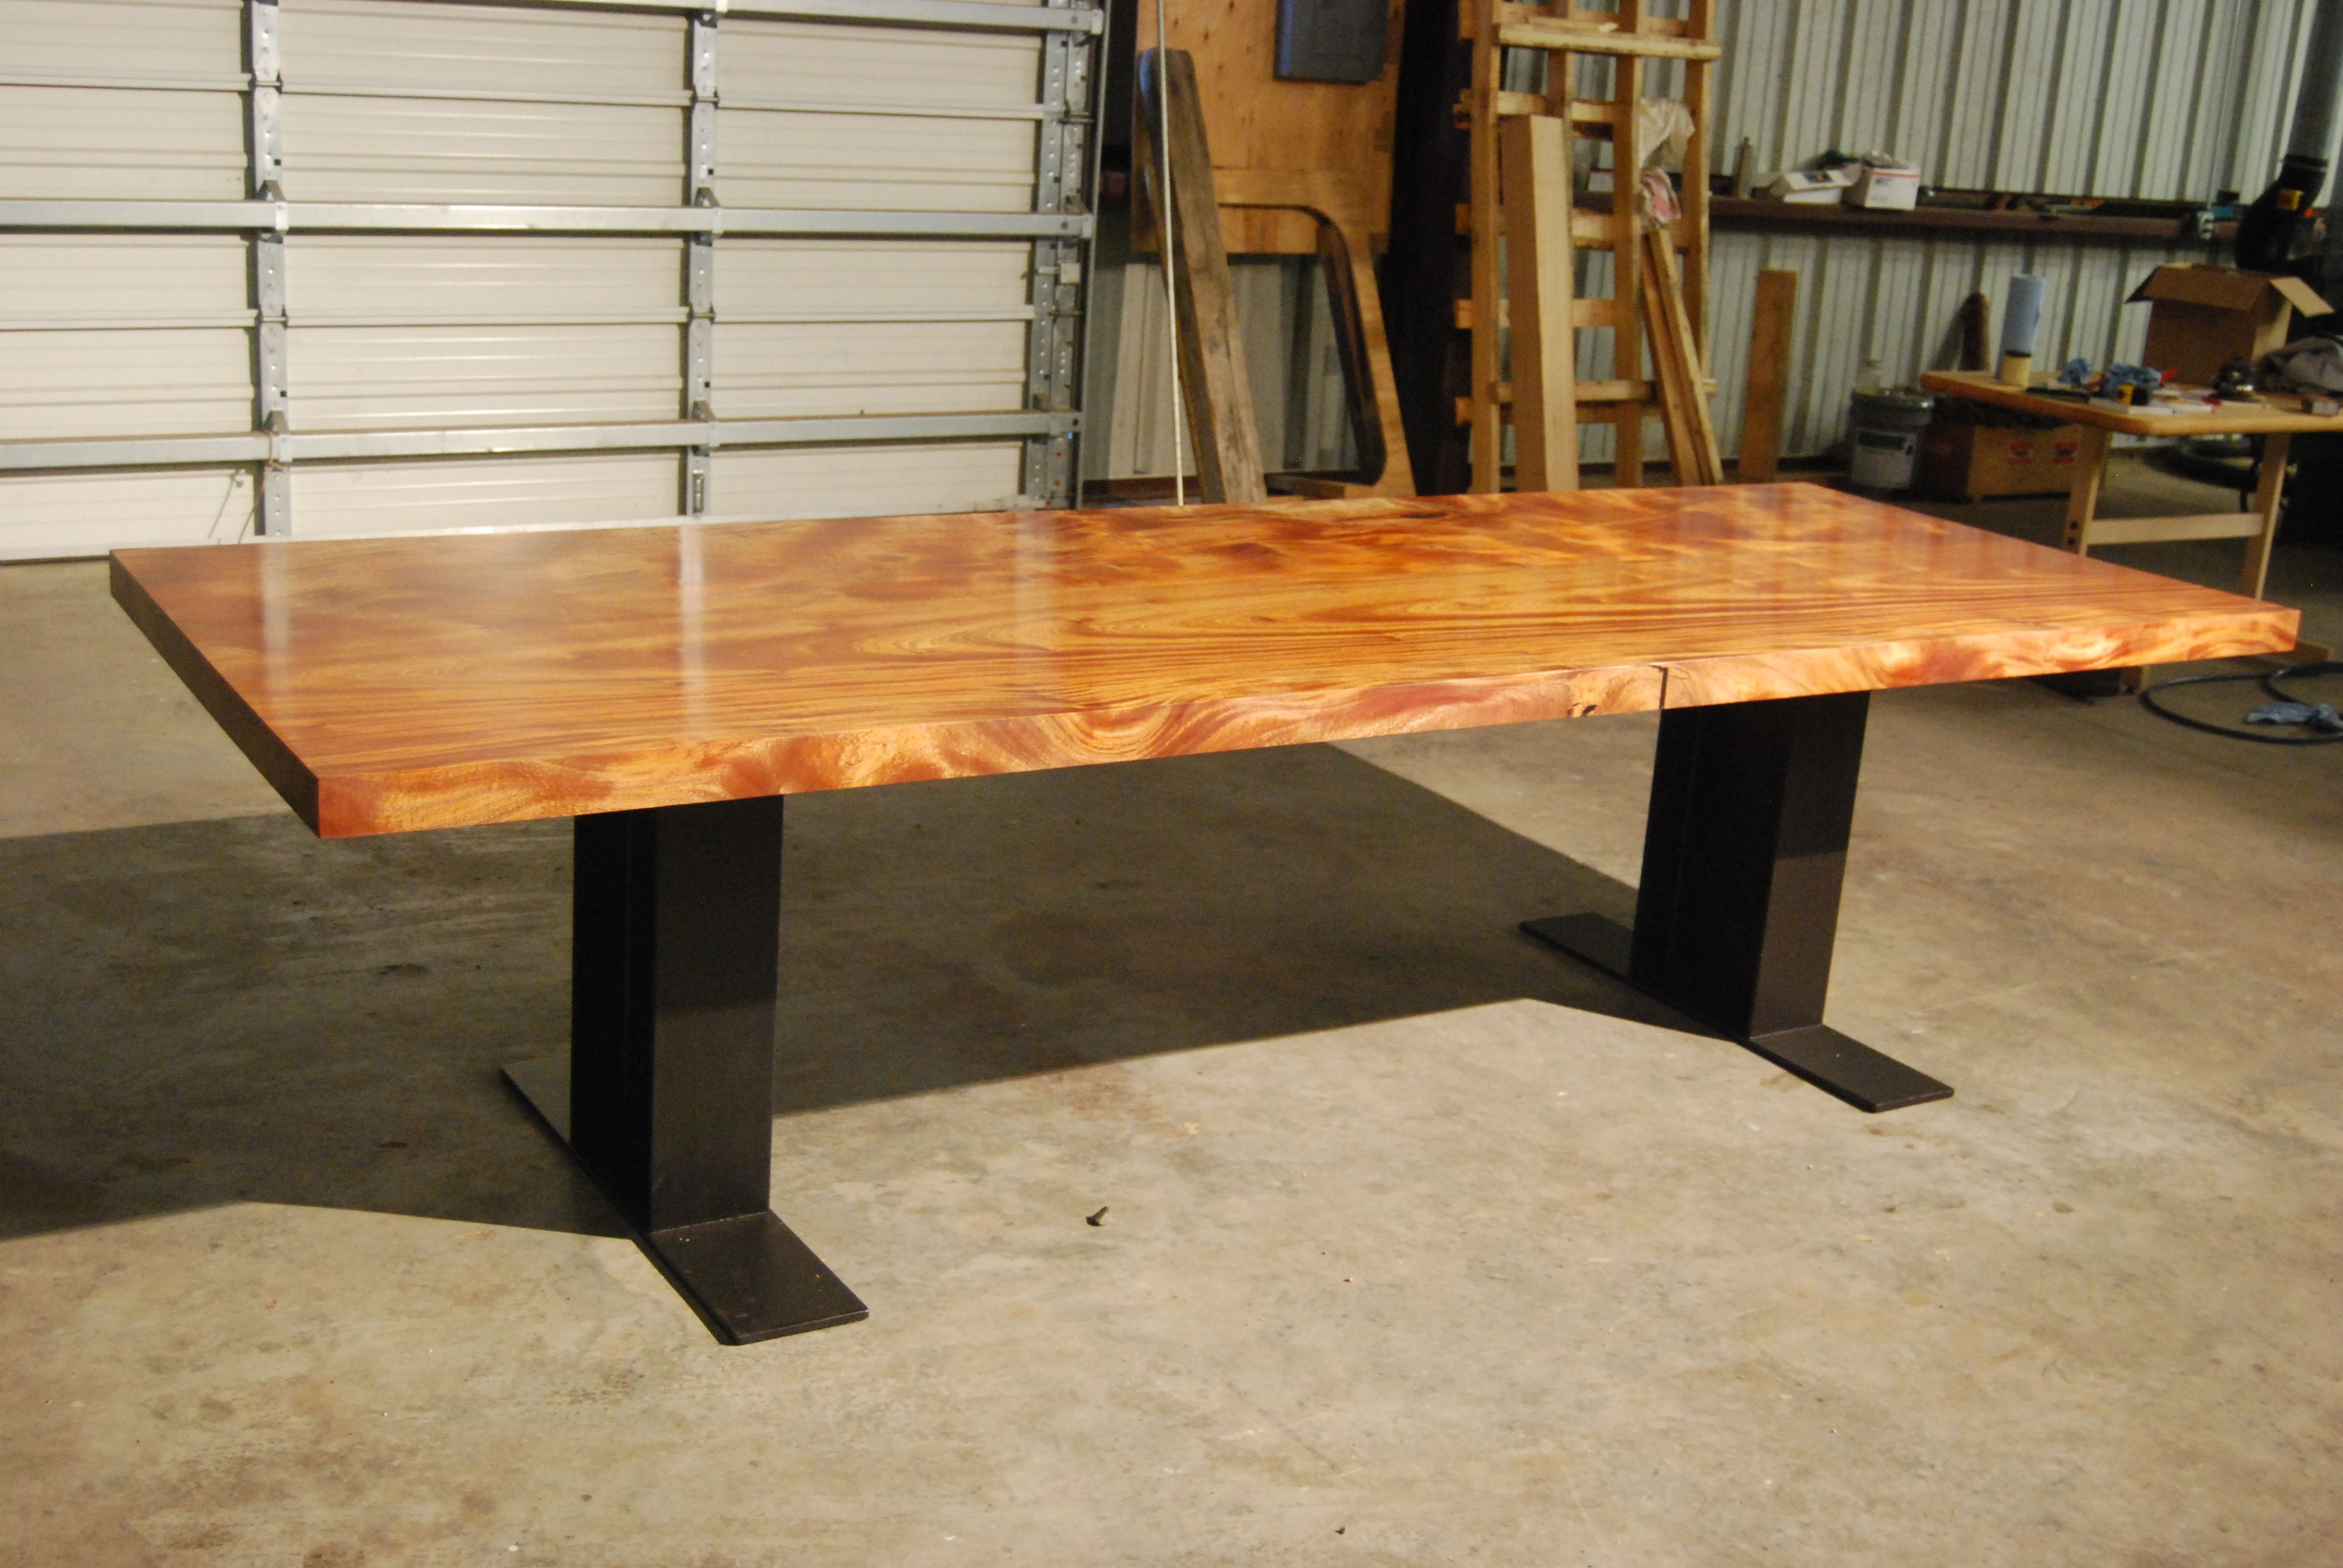 Sapele Slab Table Finished With Odieu0027s Oil, Odieu0027s Wood Butter And Odieu0027s  Wax ...